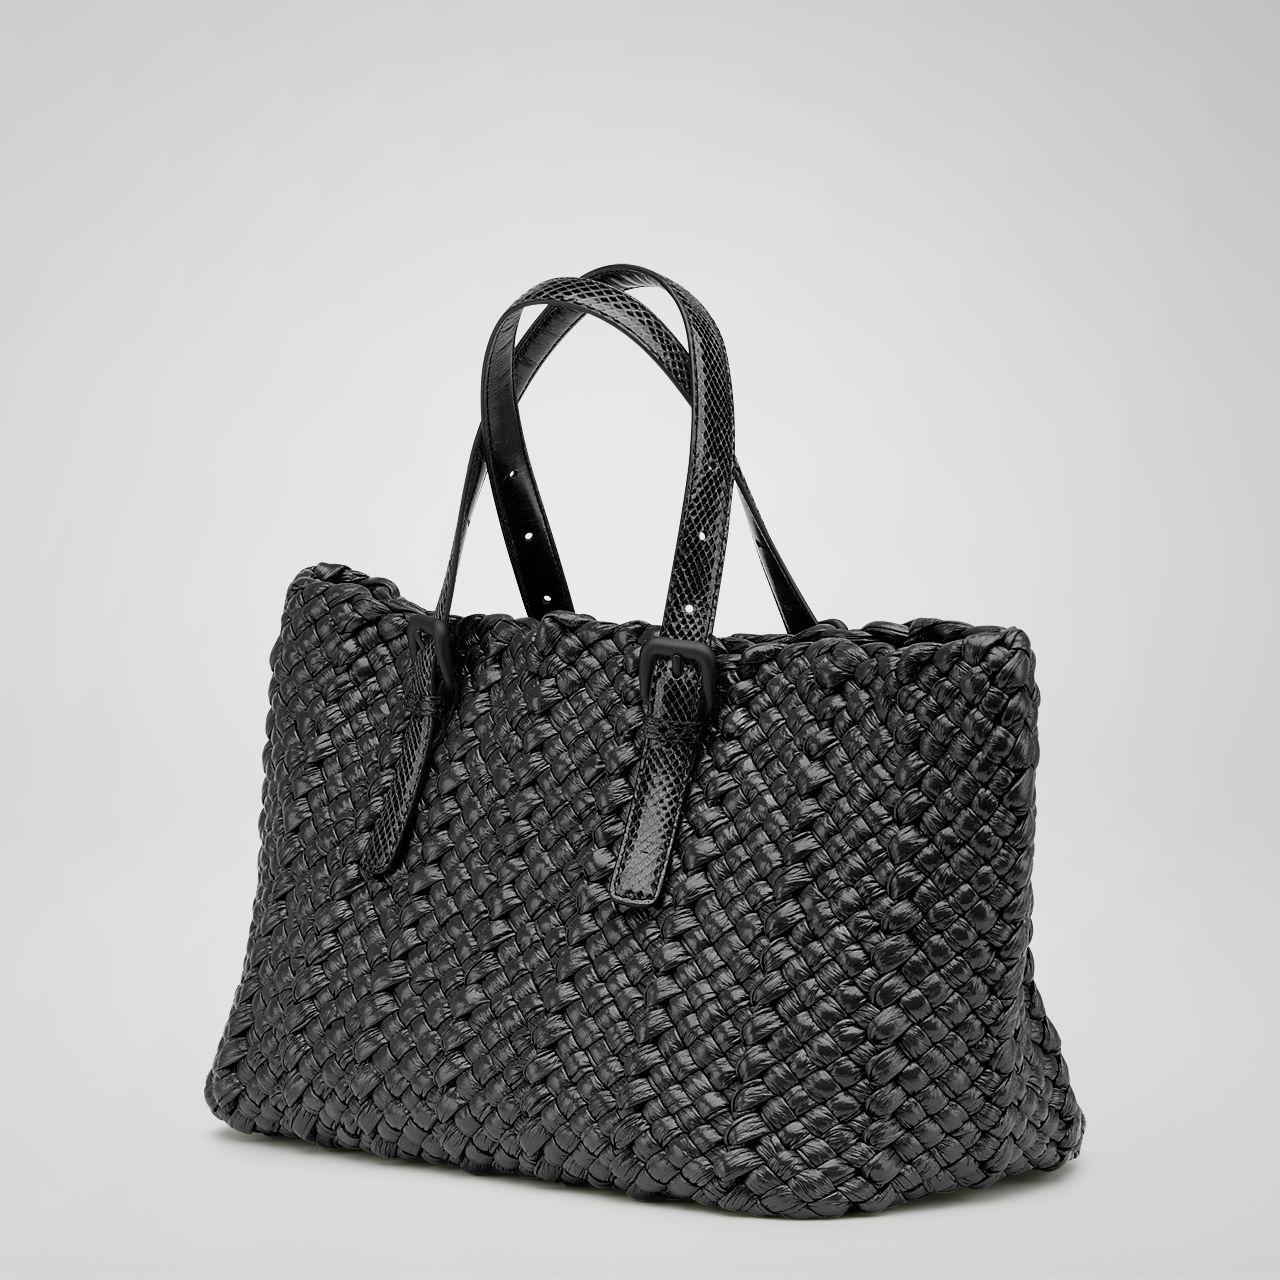 Bottega Veneta Tote Bag Replica